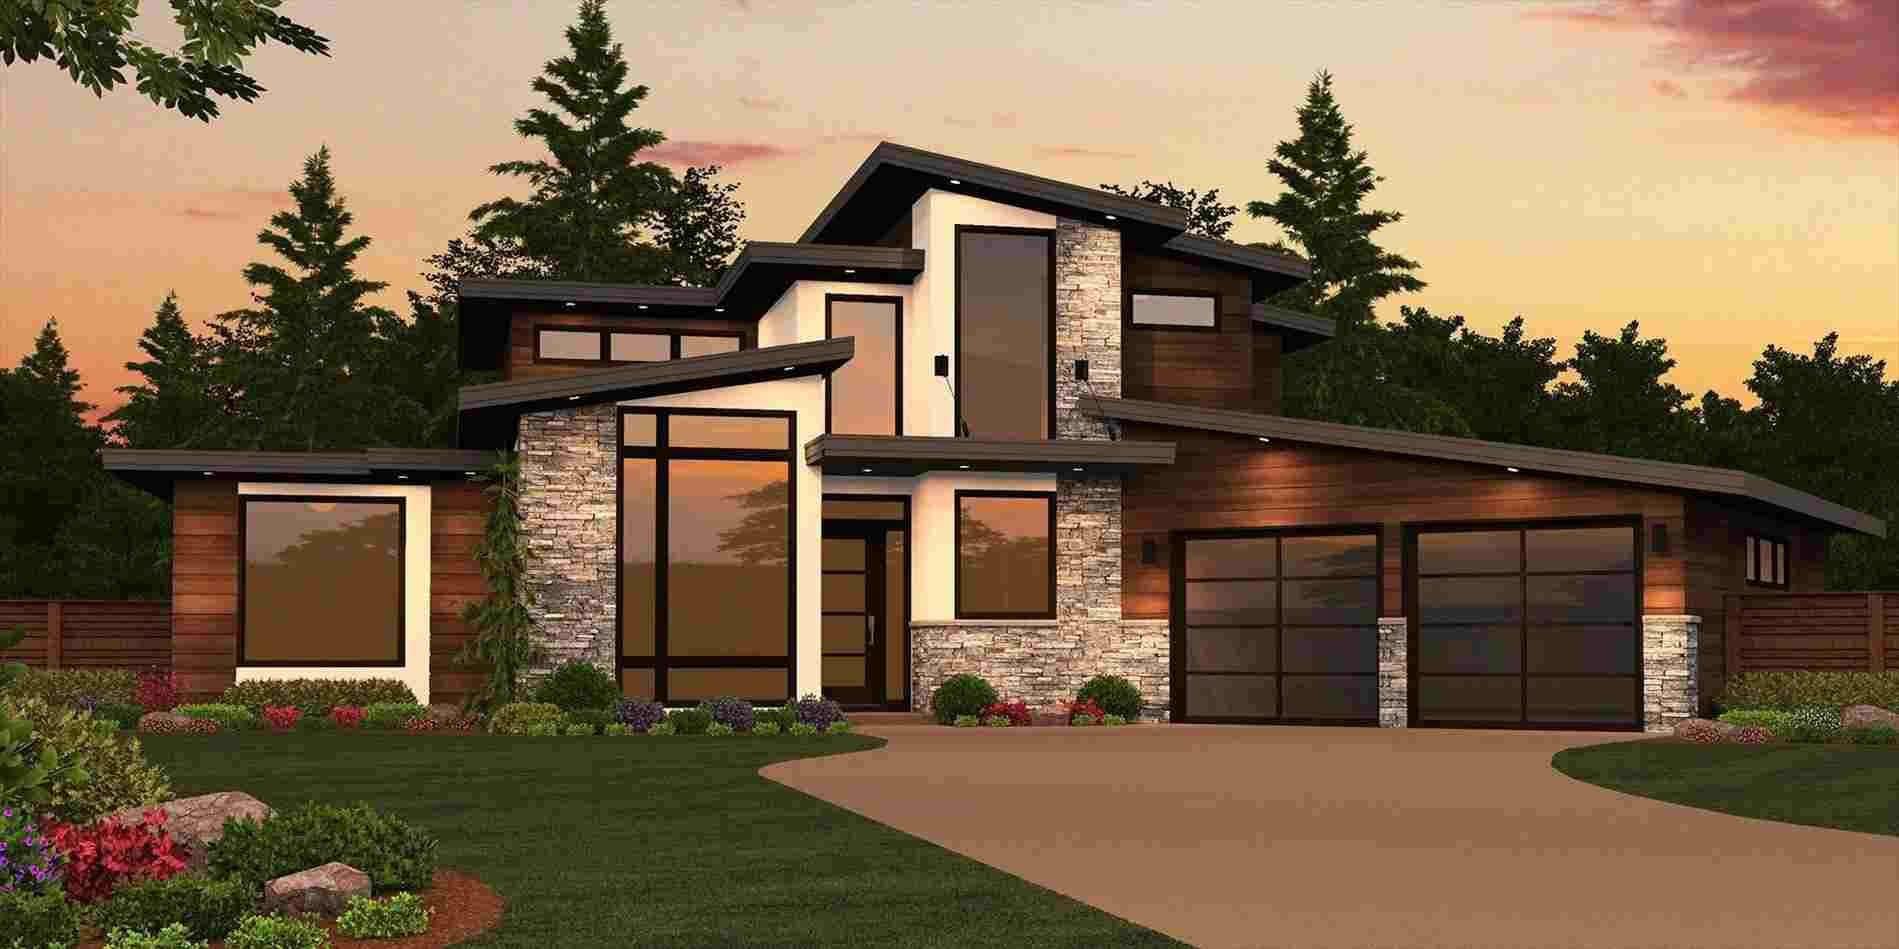 Image Result For Modern Bloxburg House Ideas House Designs Exterior Contemporary House Plans Modern House Plans